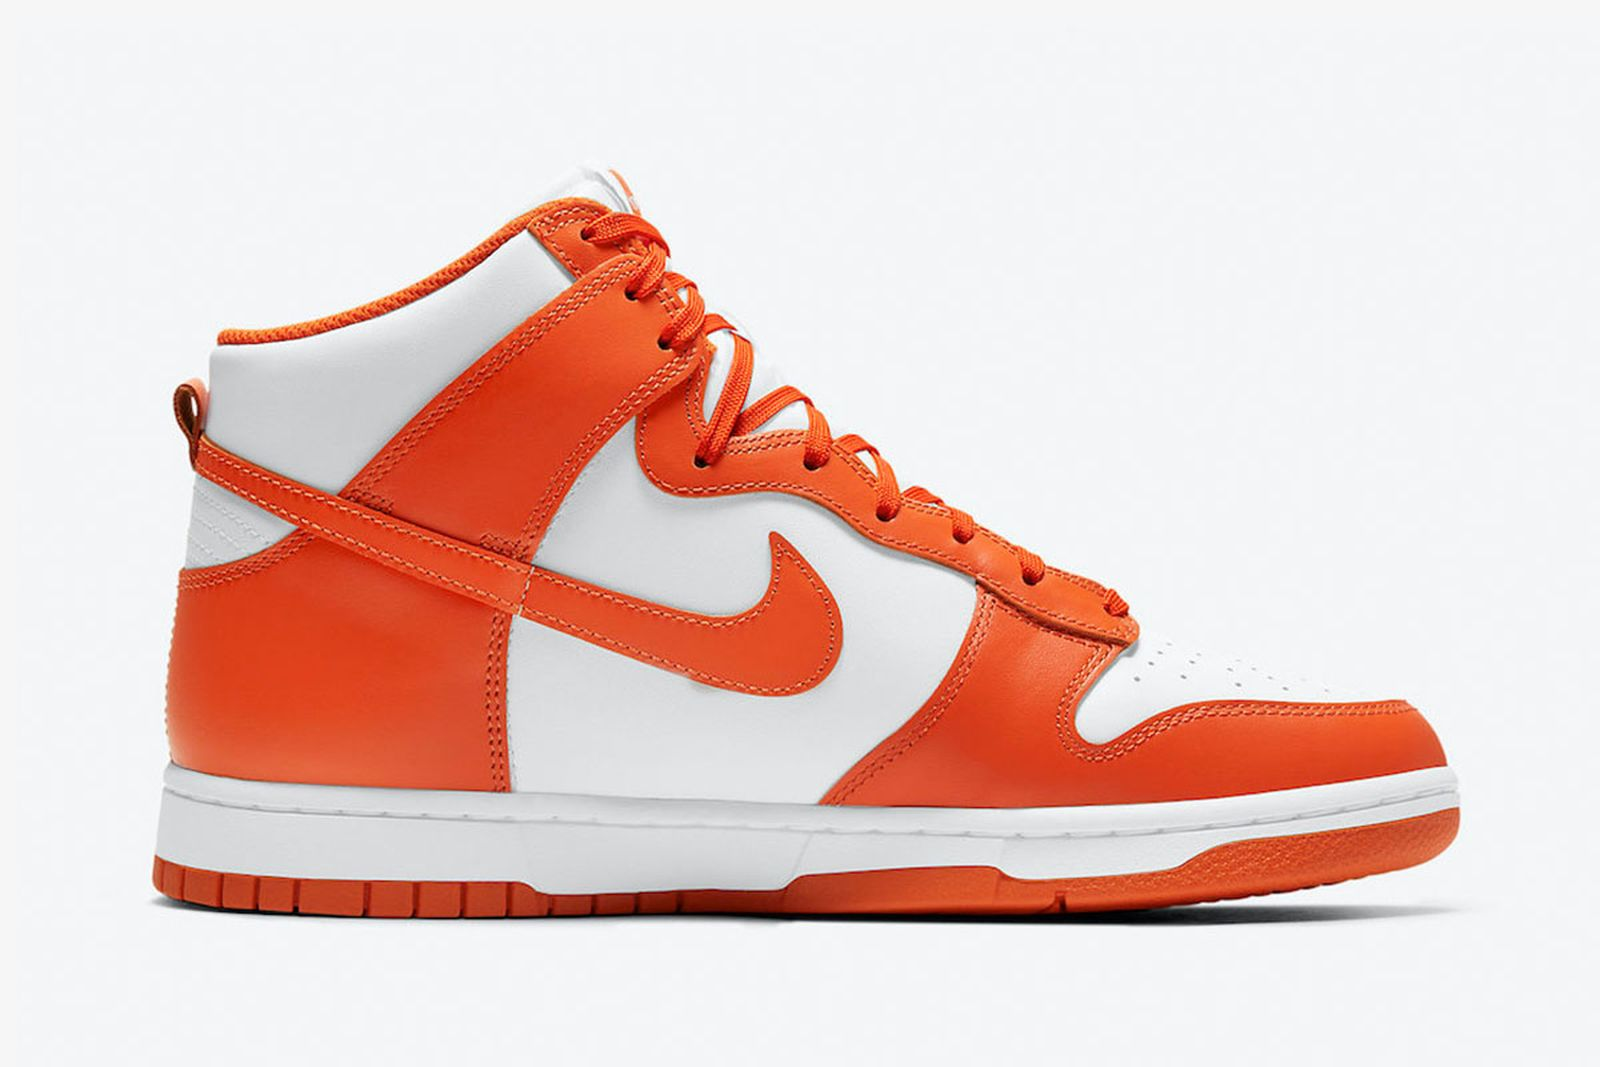 nike-dunk-high-syracuse-release-date-price-07